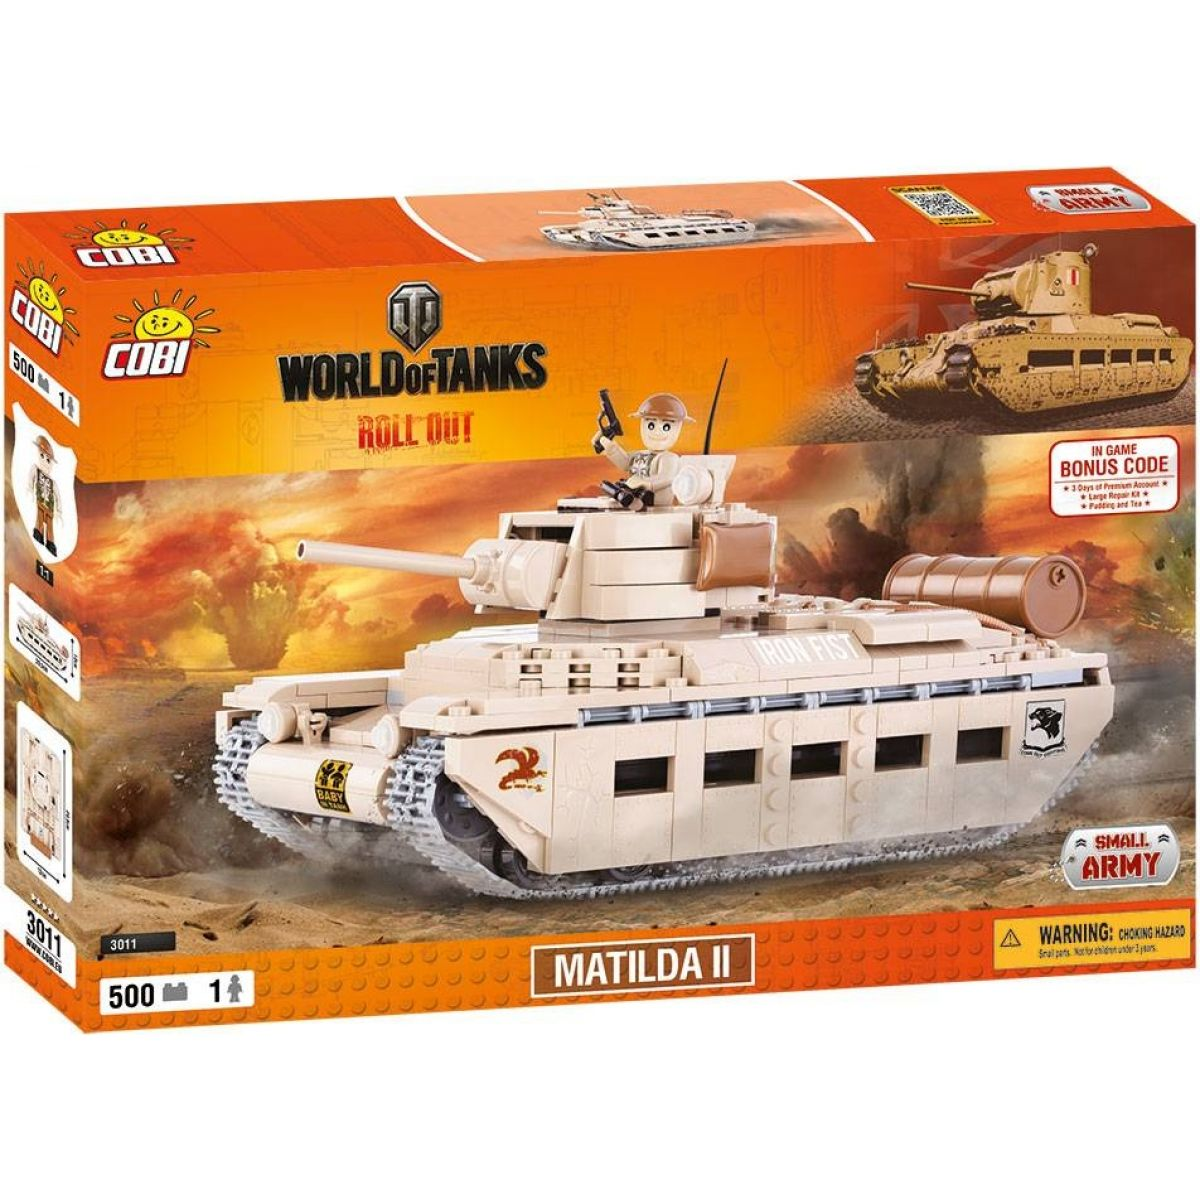 Cobi 3011 World of Tanks Matilda II 500 k 1 f